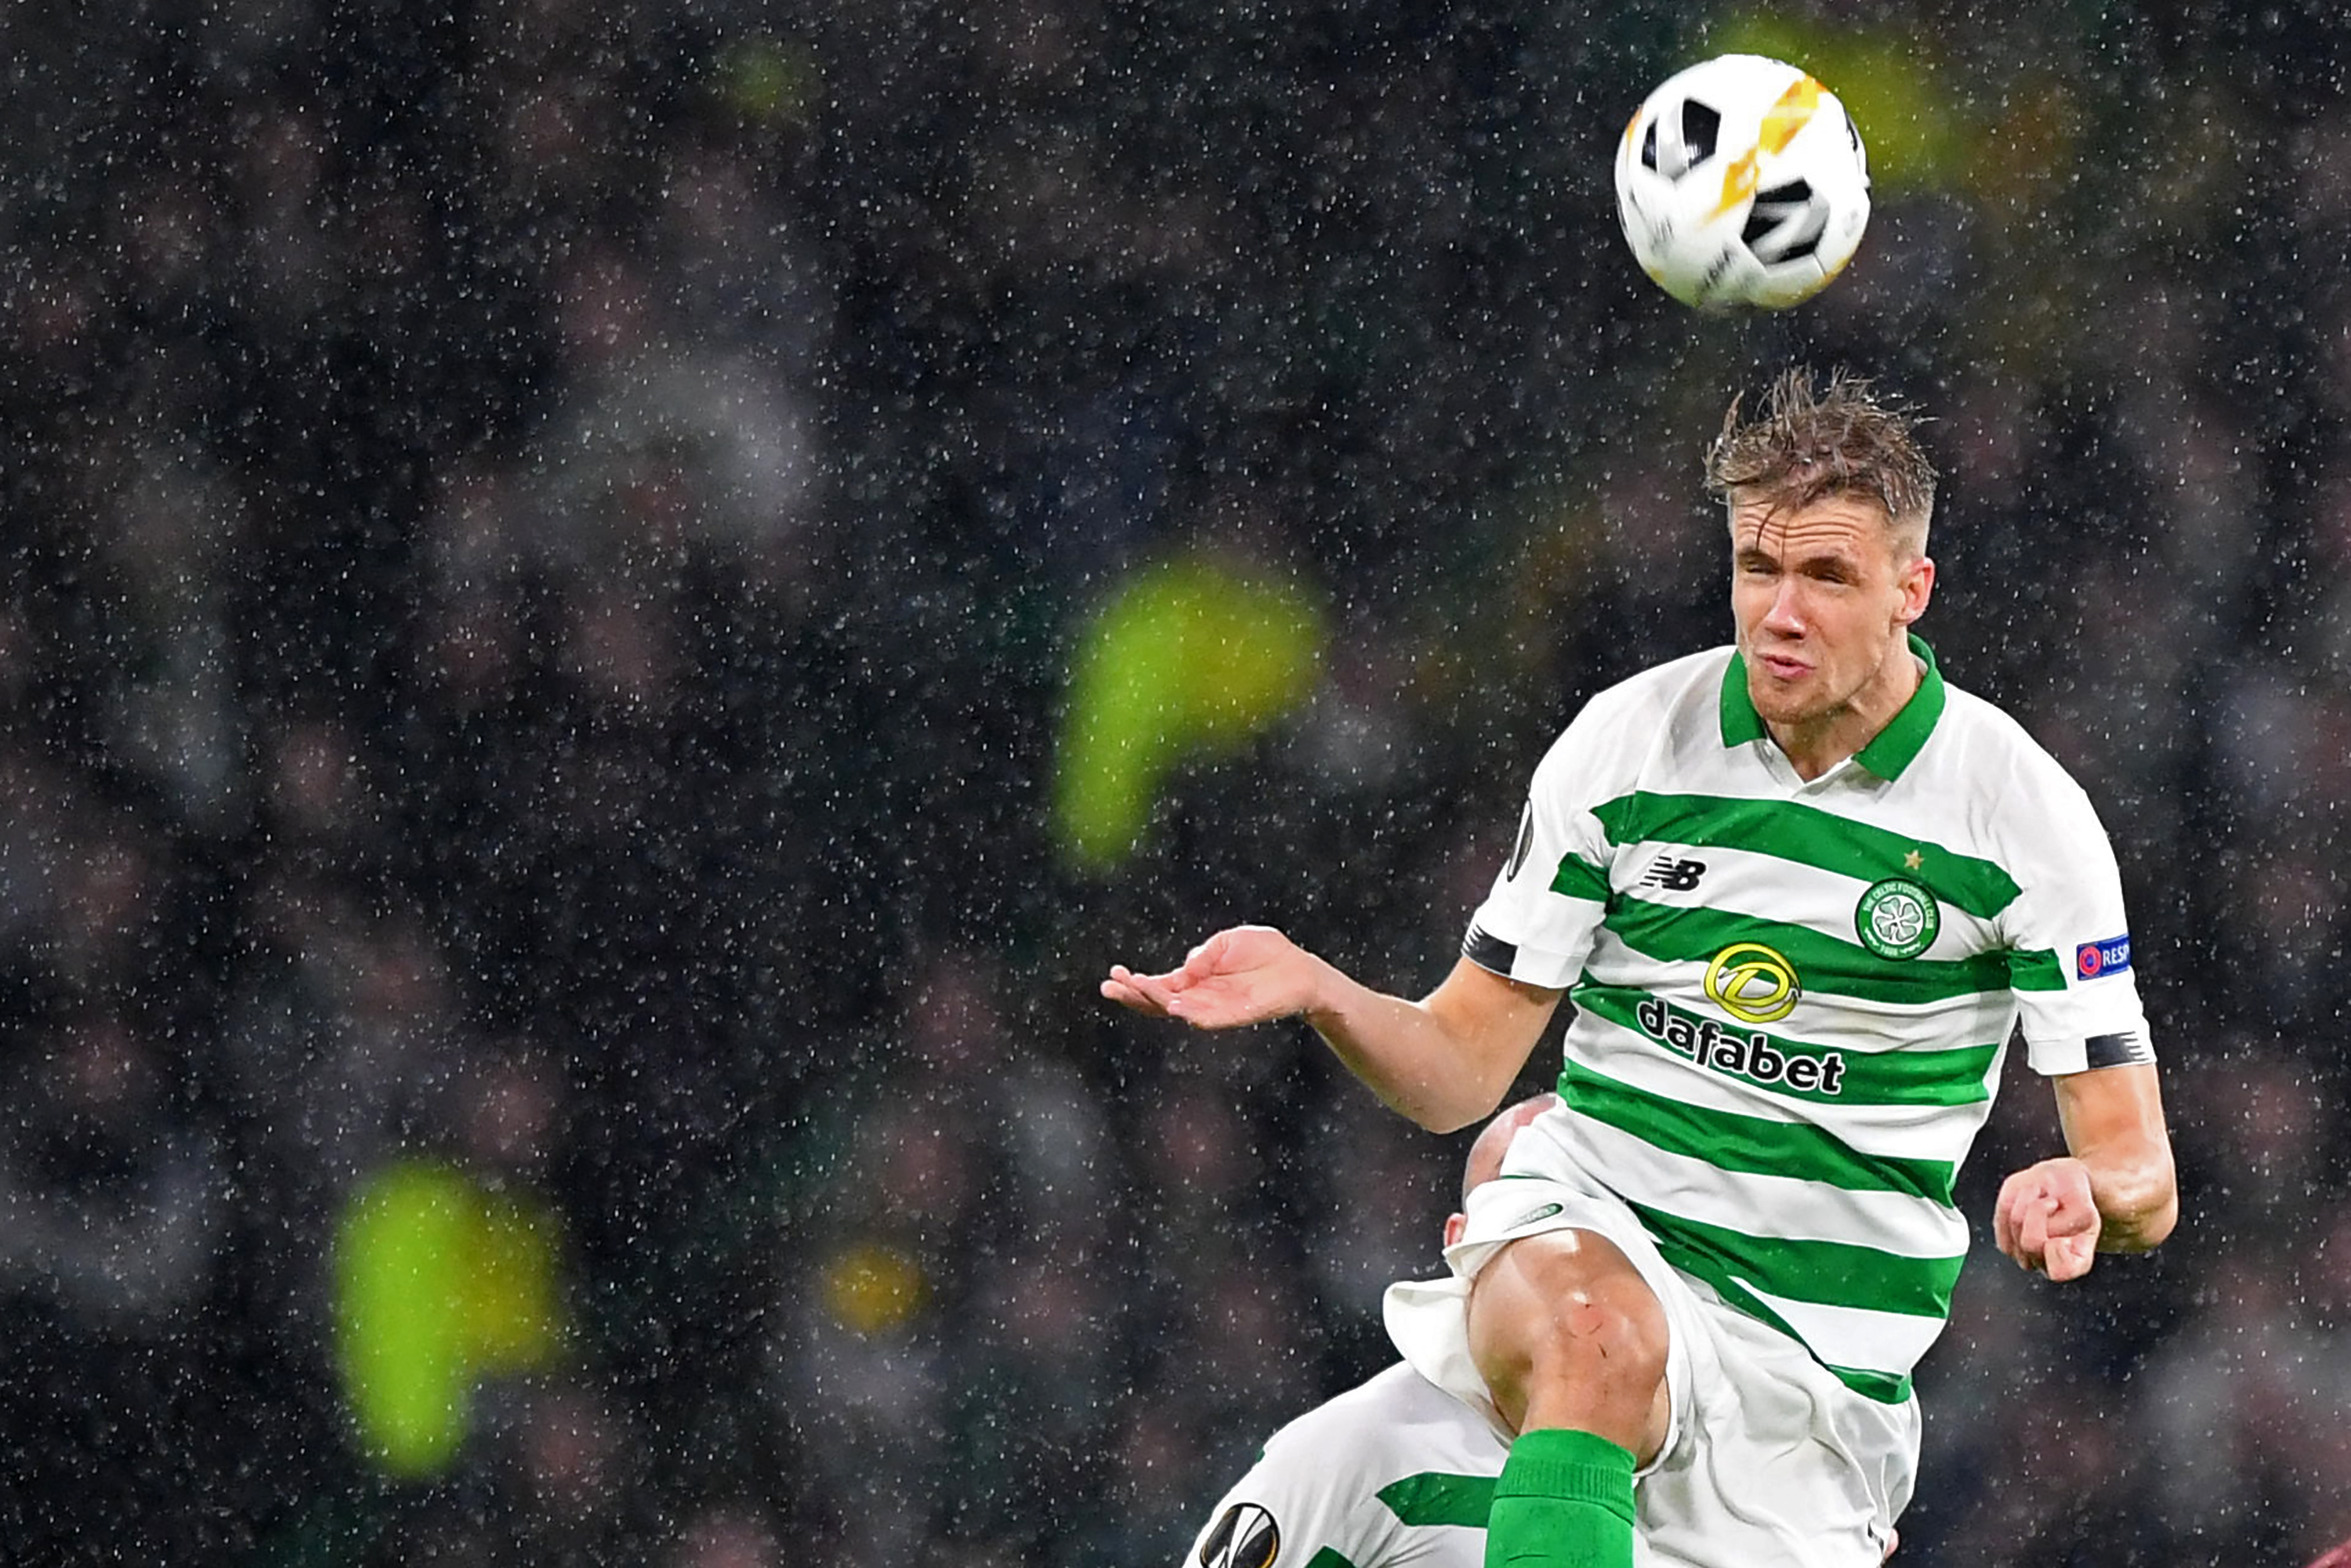 Celtic star Ajer is in action